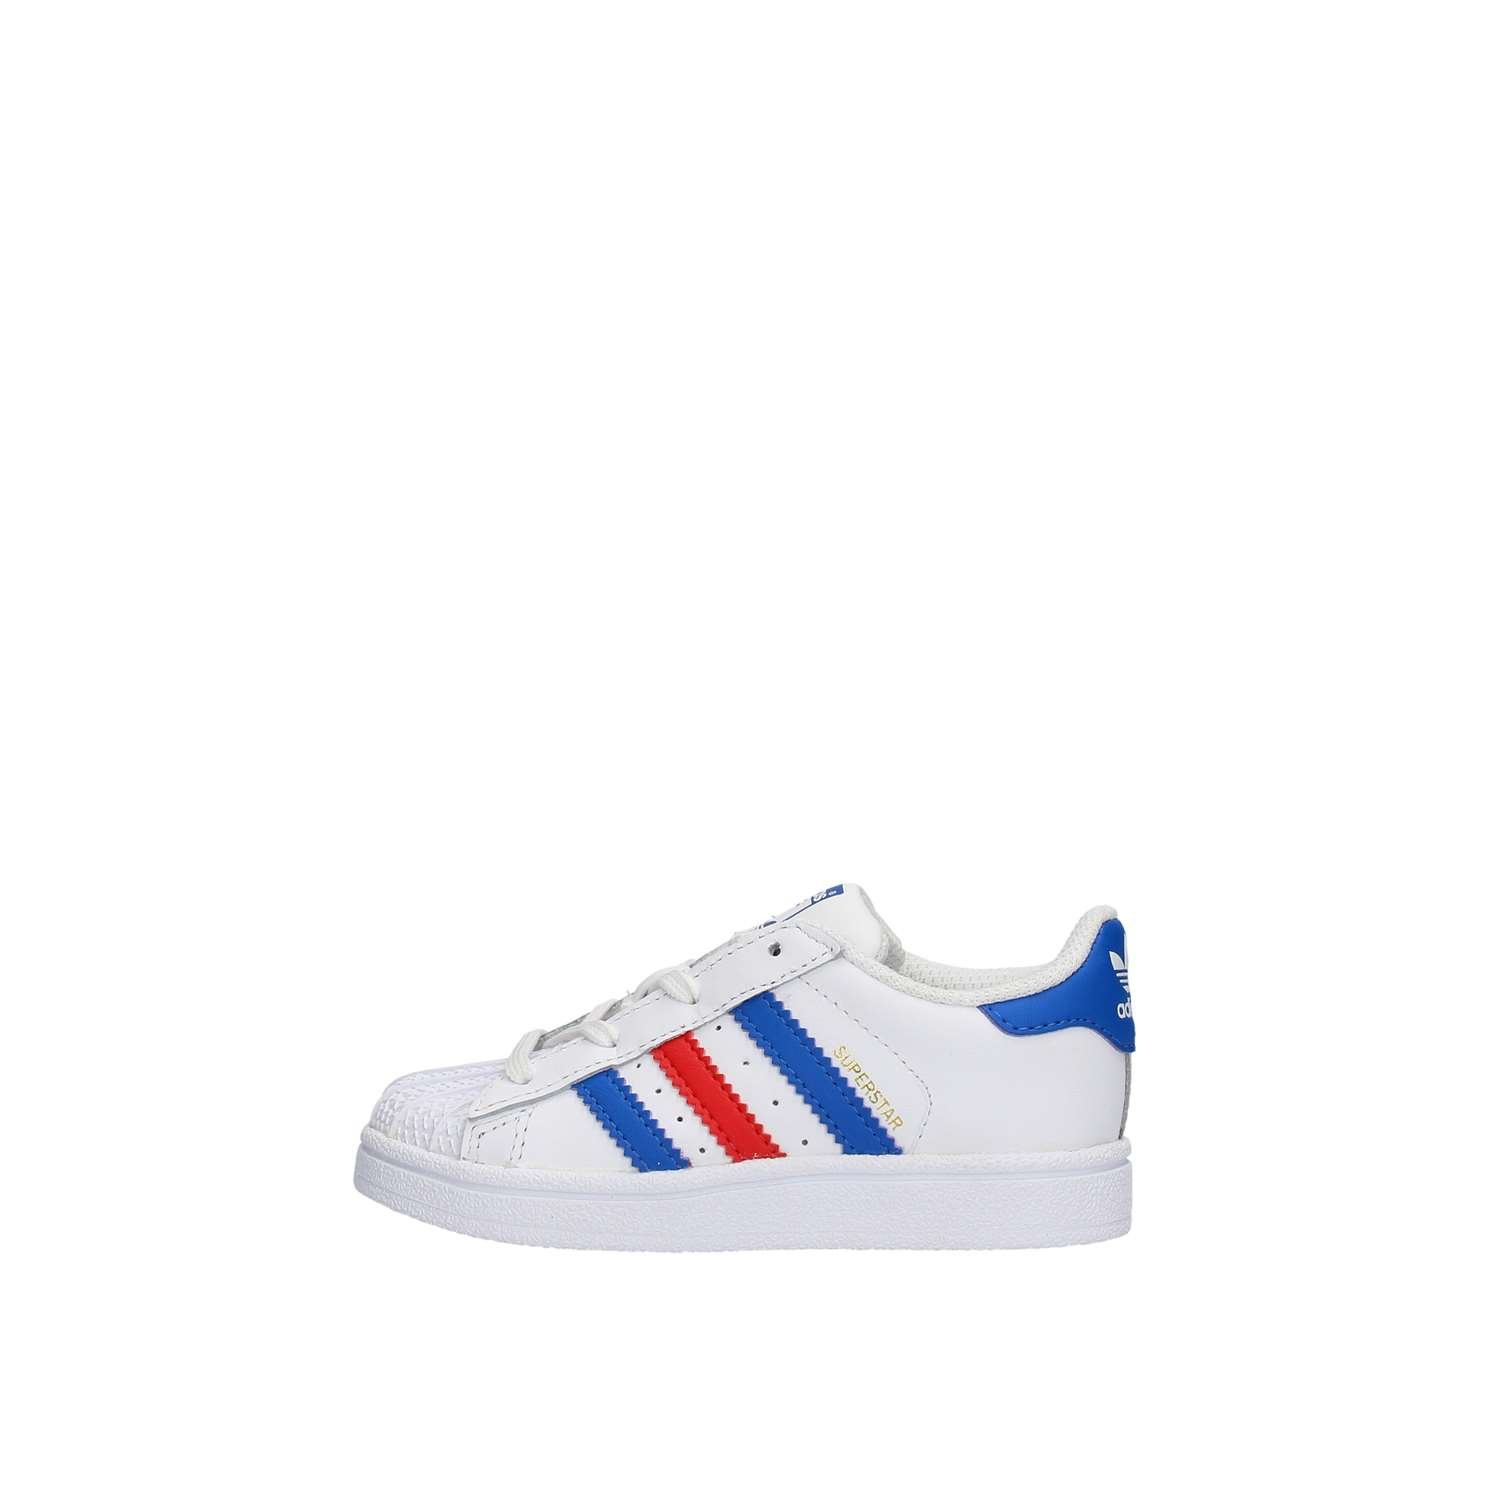 adidas Superstar I 'FTWR White' BB7085